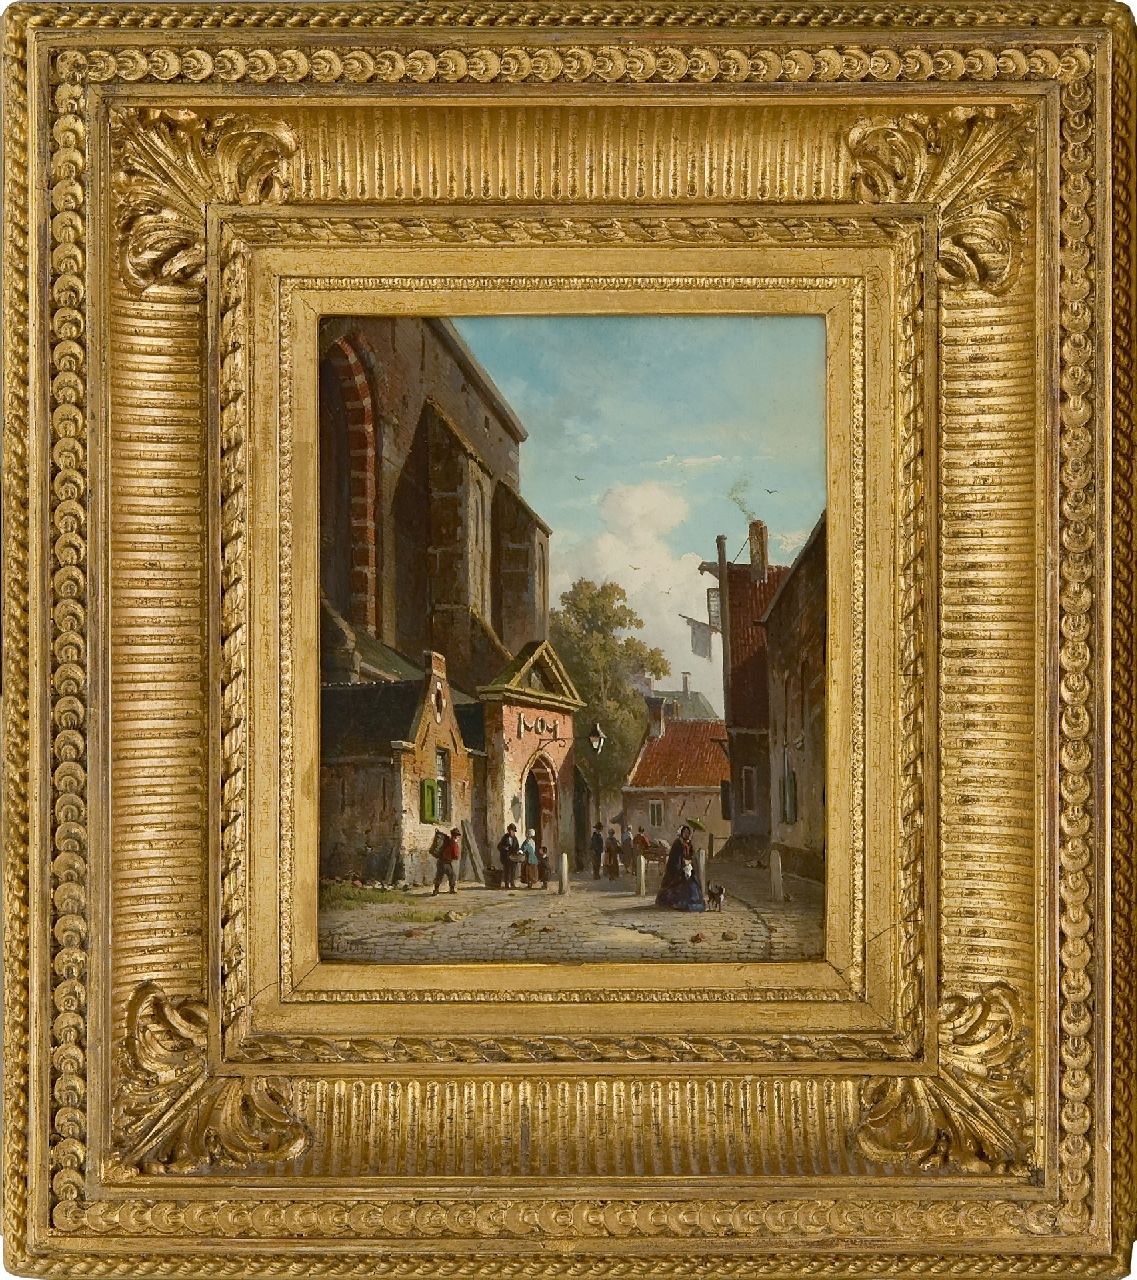 Eversen A.  | Adrianus Eversen | Paintings offered for sale | A view of southern entrance of the Waalse Kerk, Haarlem, oil on panel 19.2 x 15.2 cm, signed l.l. in full and with monogram